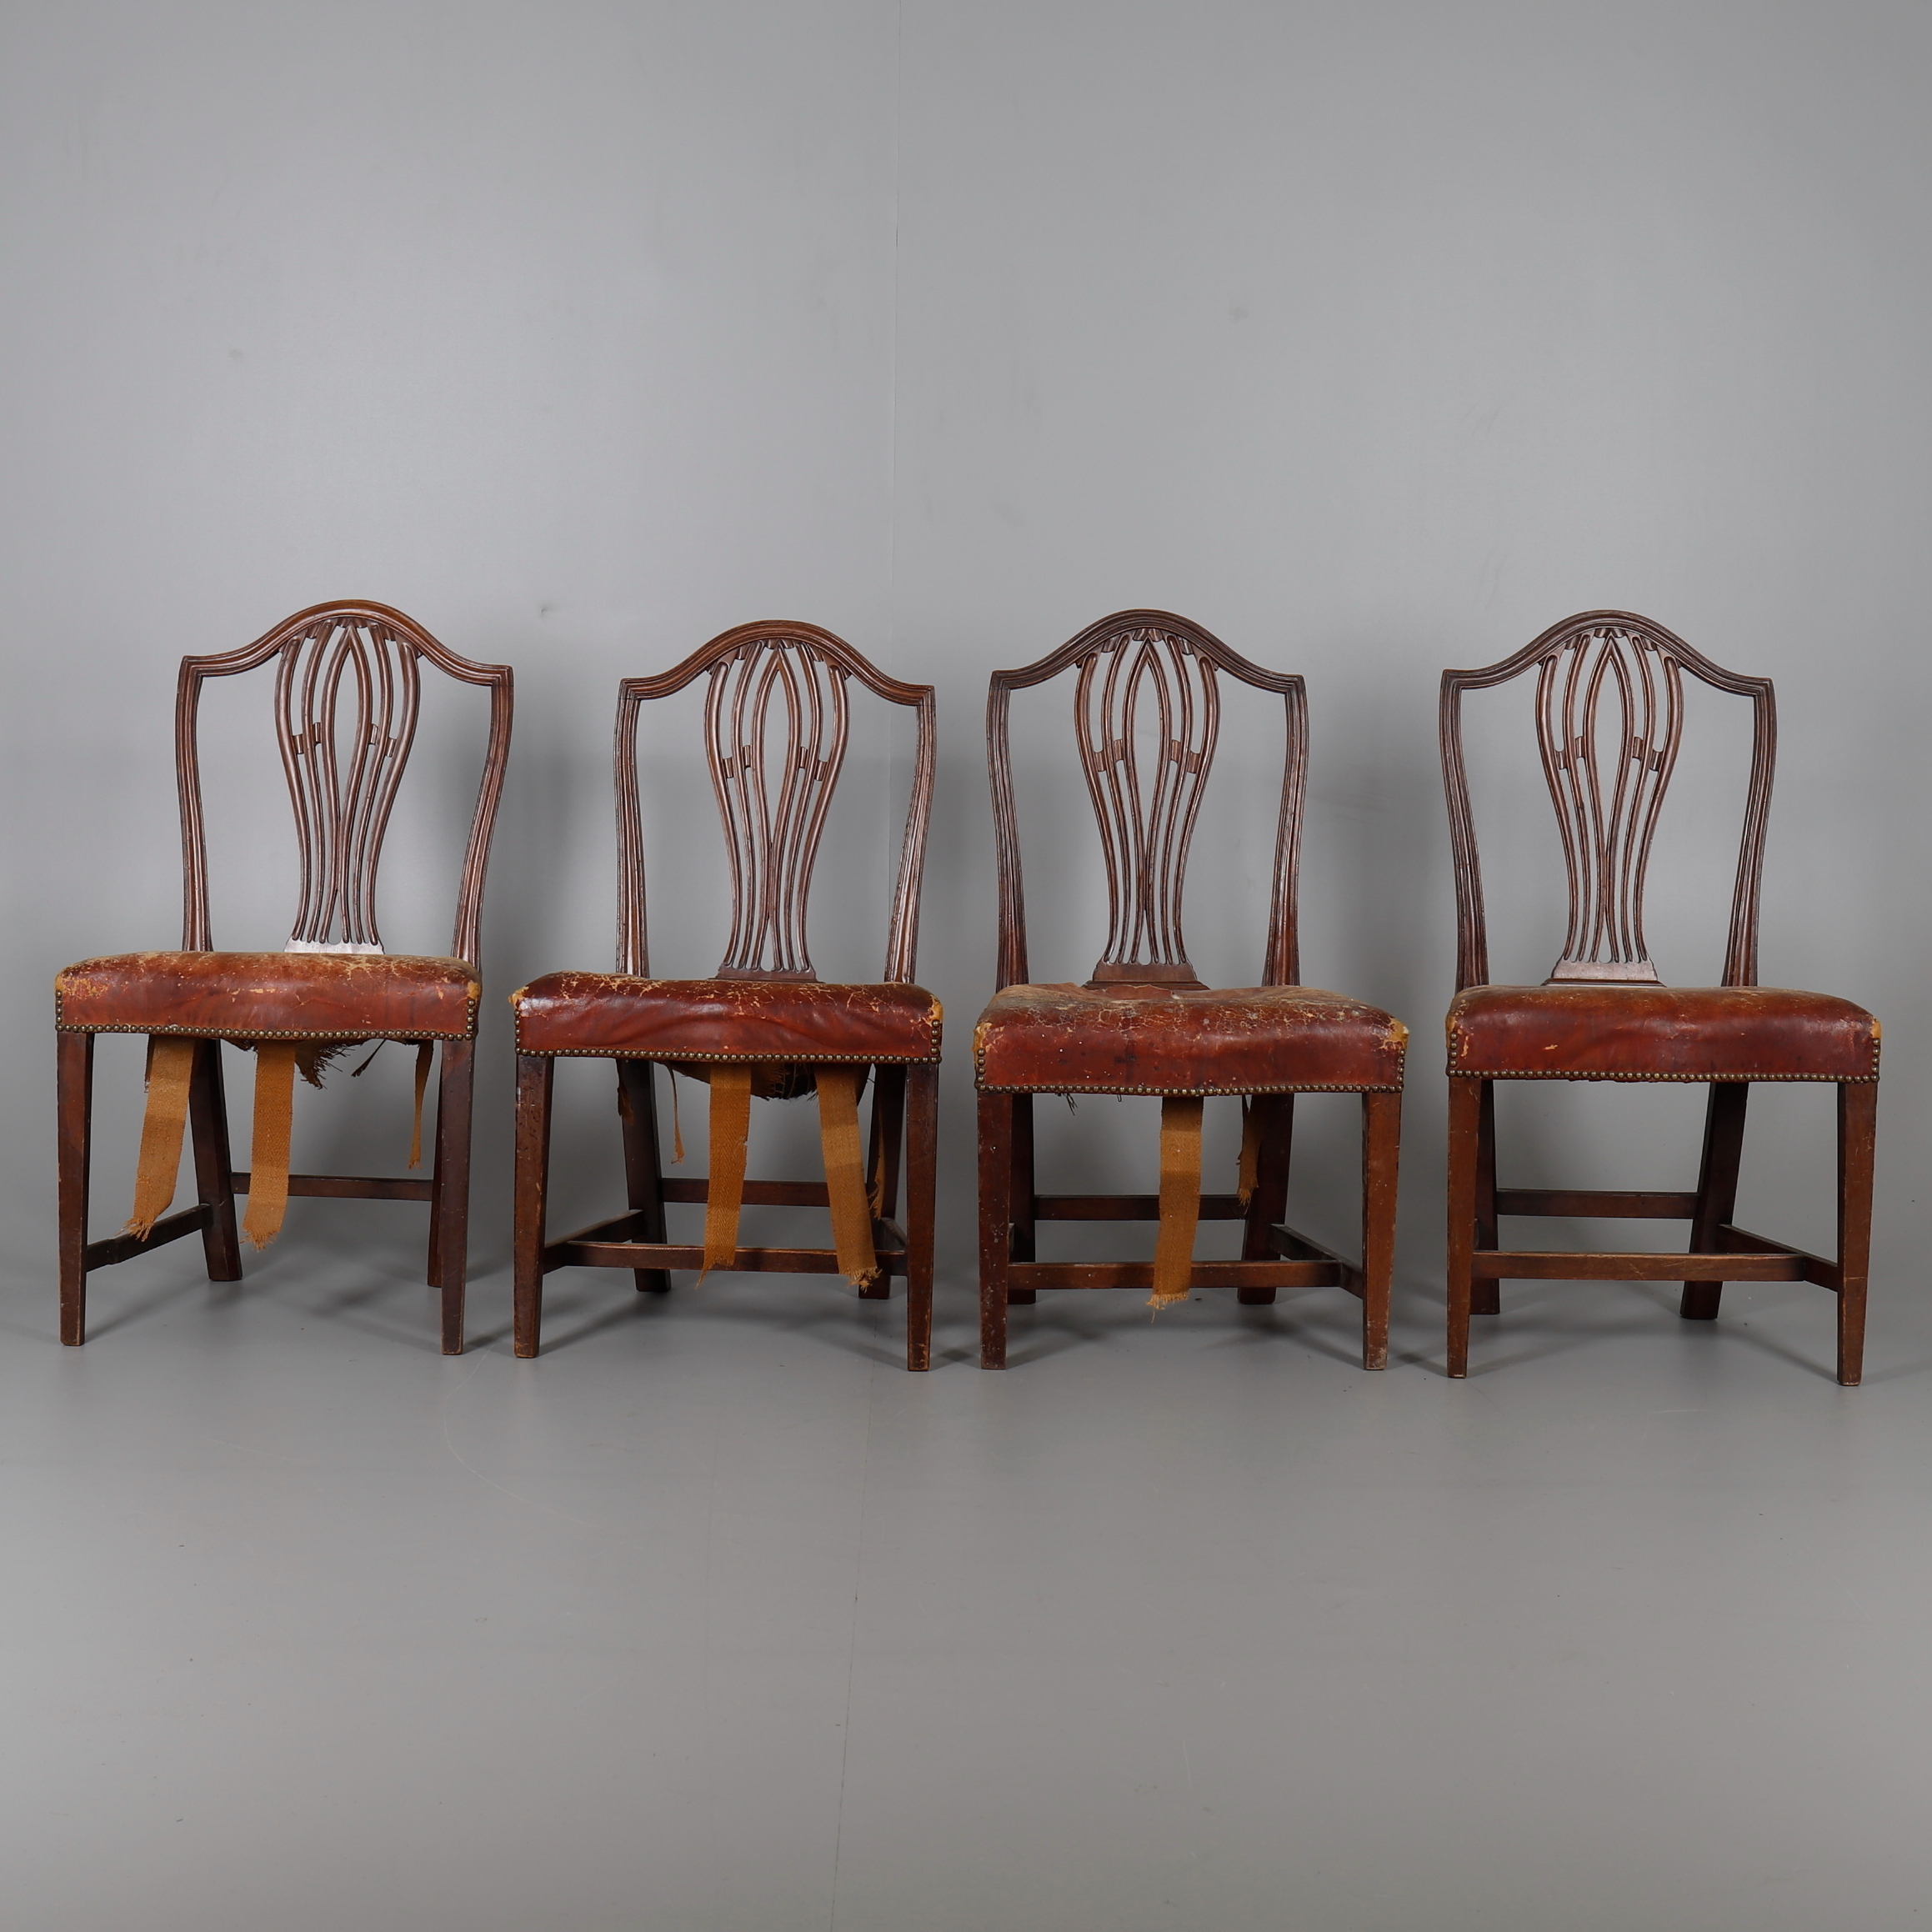 A Set Of Four Mahogany And Red Leather Upholstered Dining Chairs In George Iii Style Furniture Armchairs Chairs Auctionet